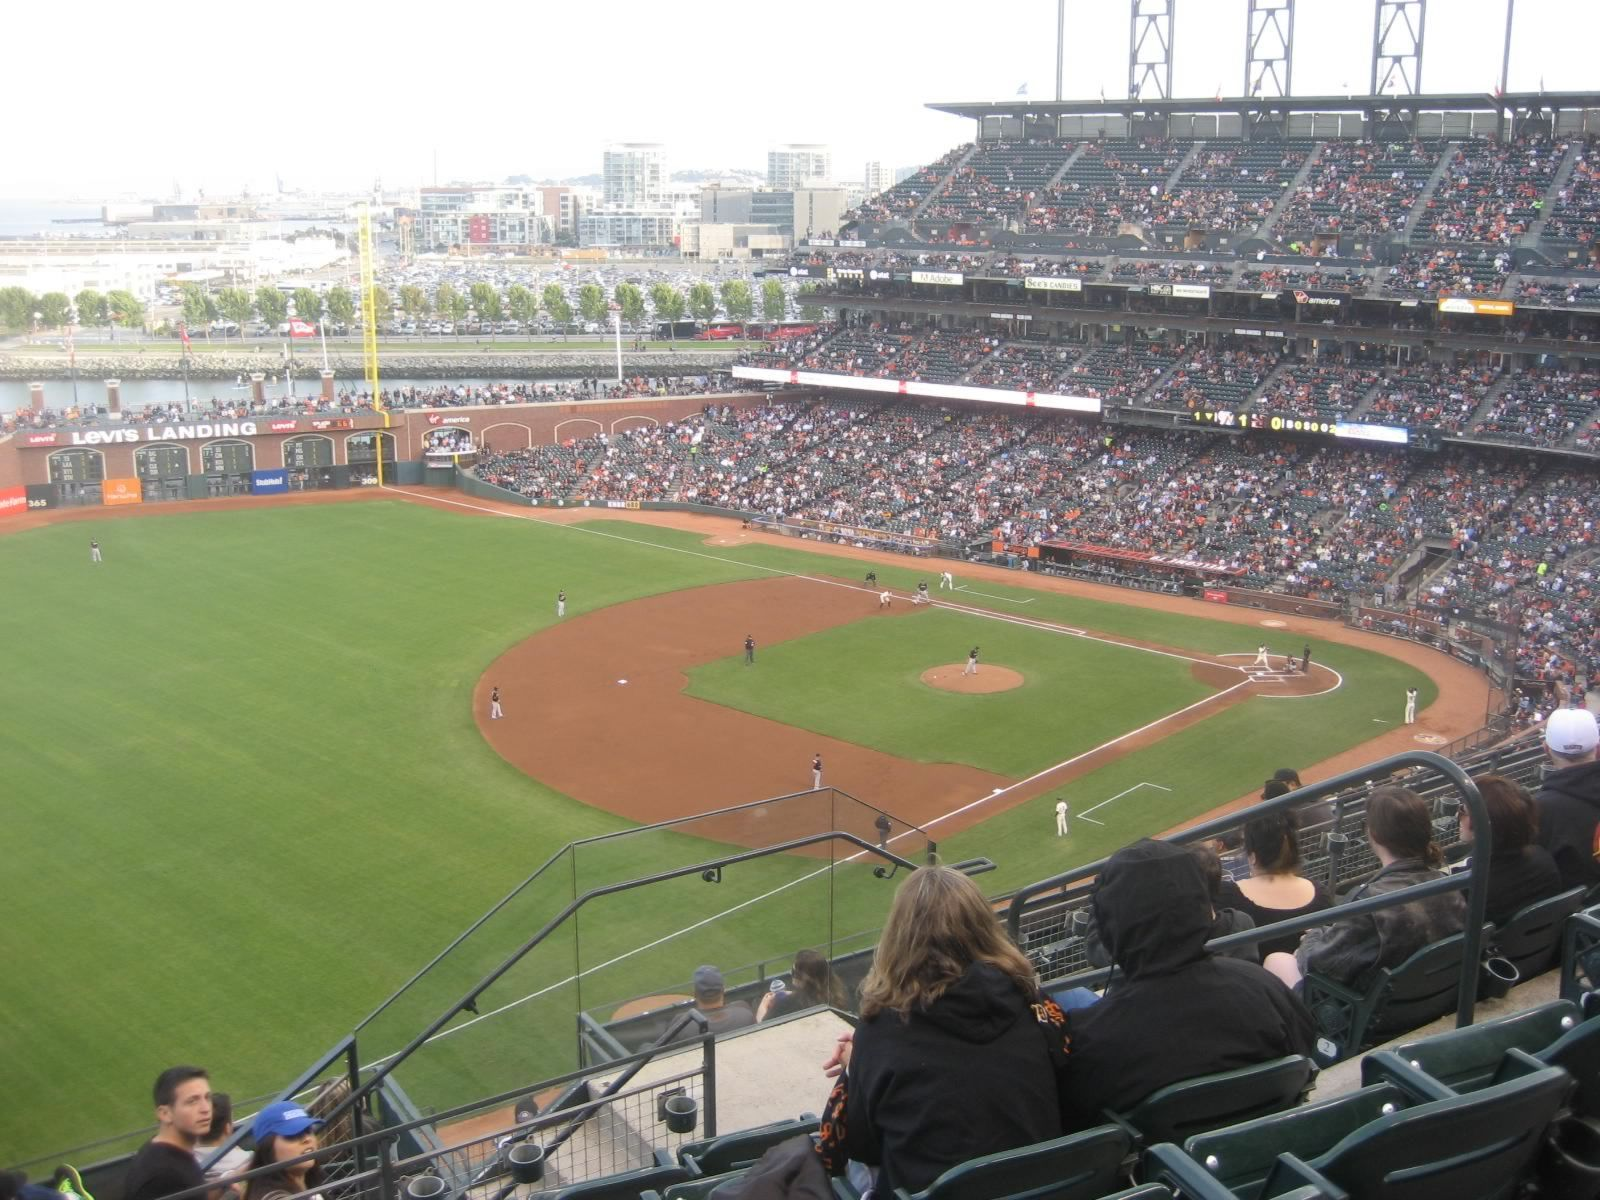 Best Cheap Seats At Att Park View Level Outfield At T Park Baseball Seating Hardball Giants